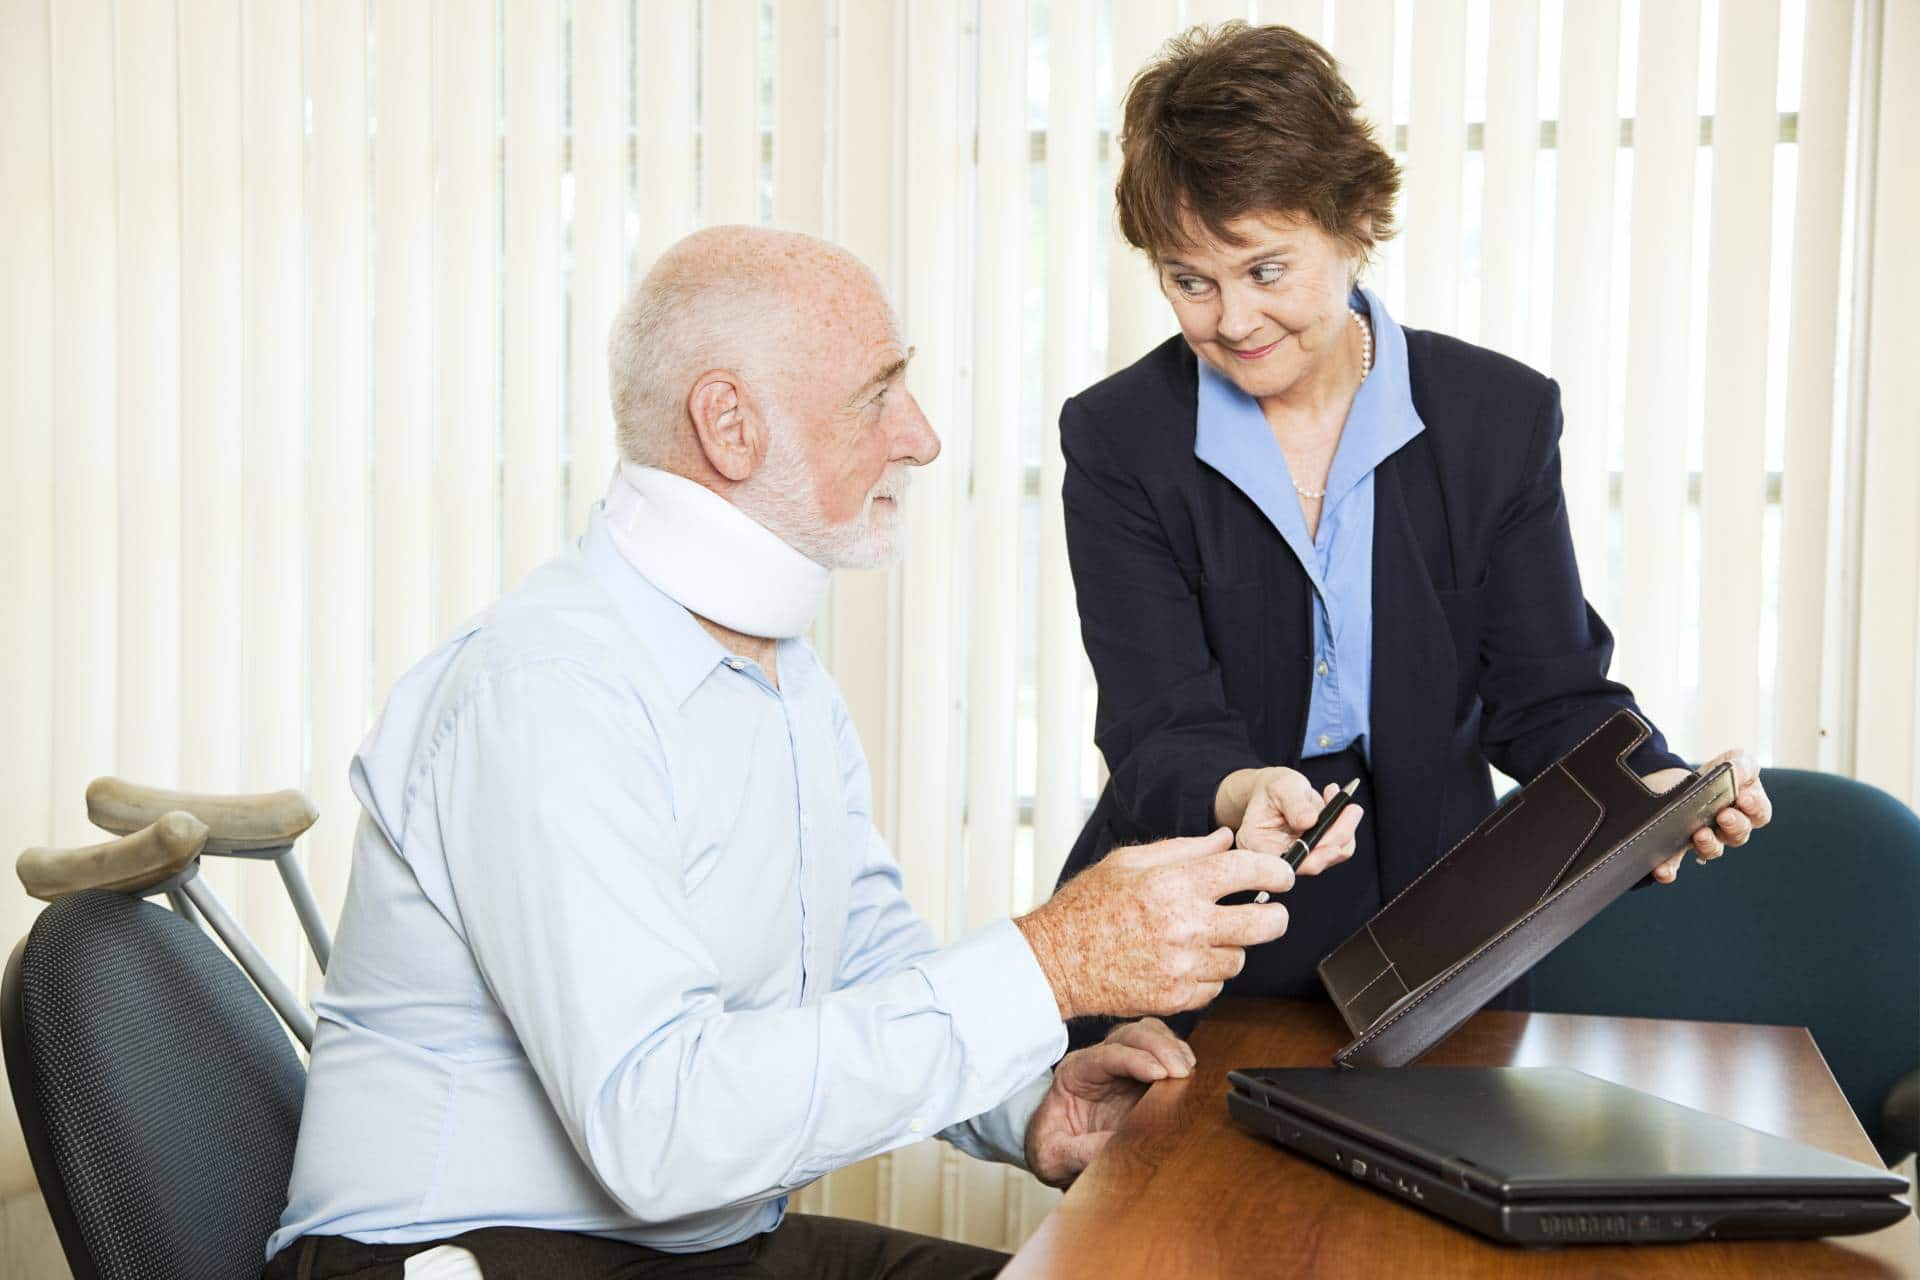 Schedule a free consultation with our personal injury lawyers at The Angell Law Firm.